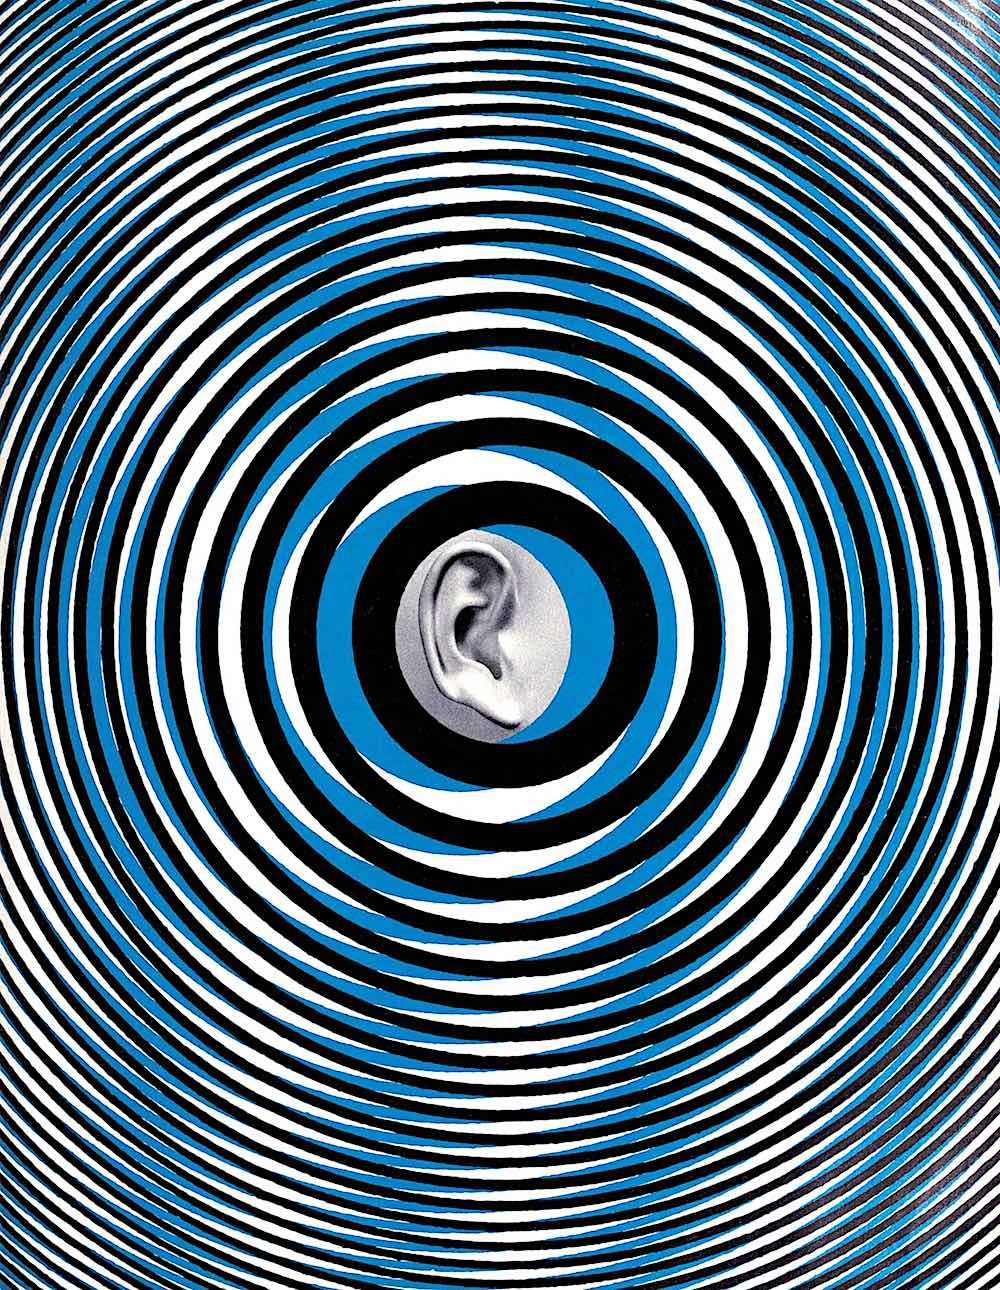 a 1968 sound graphic in blue and black with moire pattern sound rings and an ear